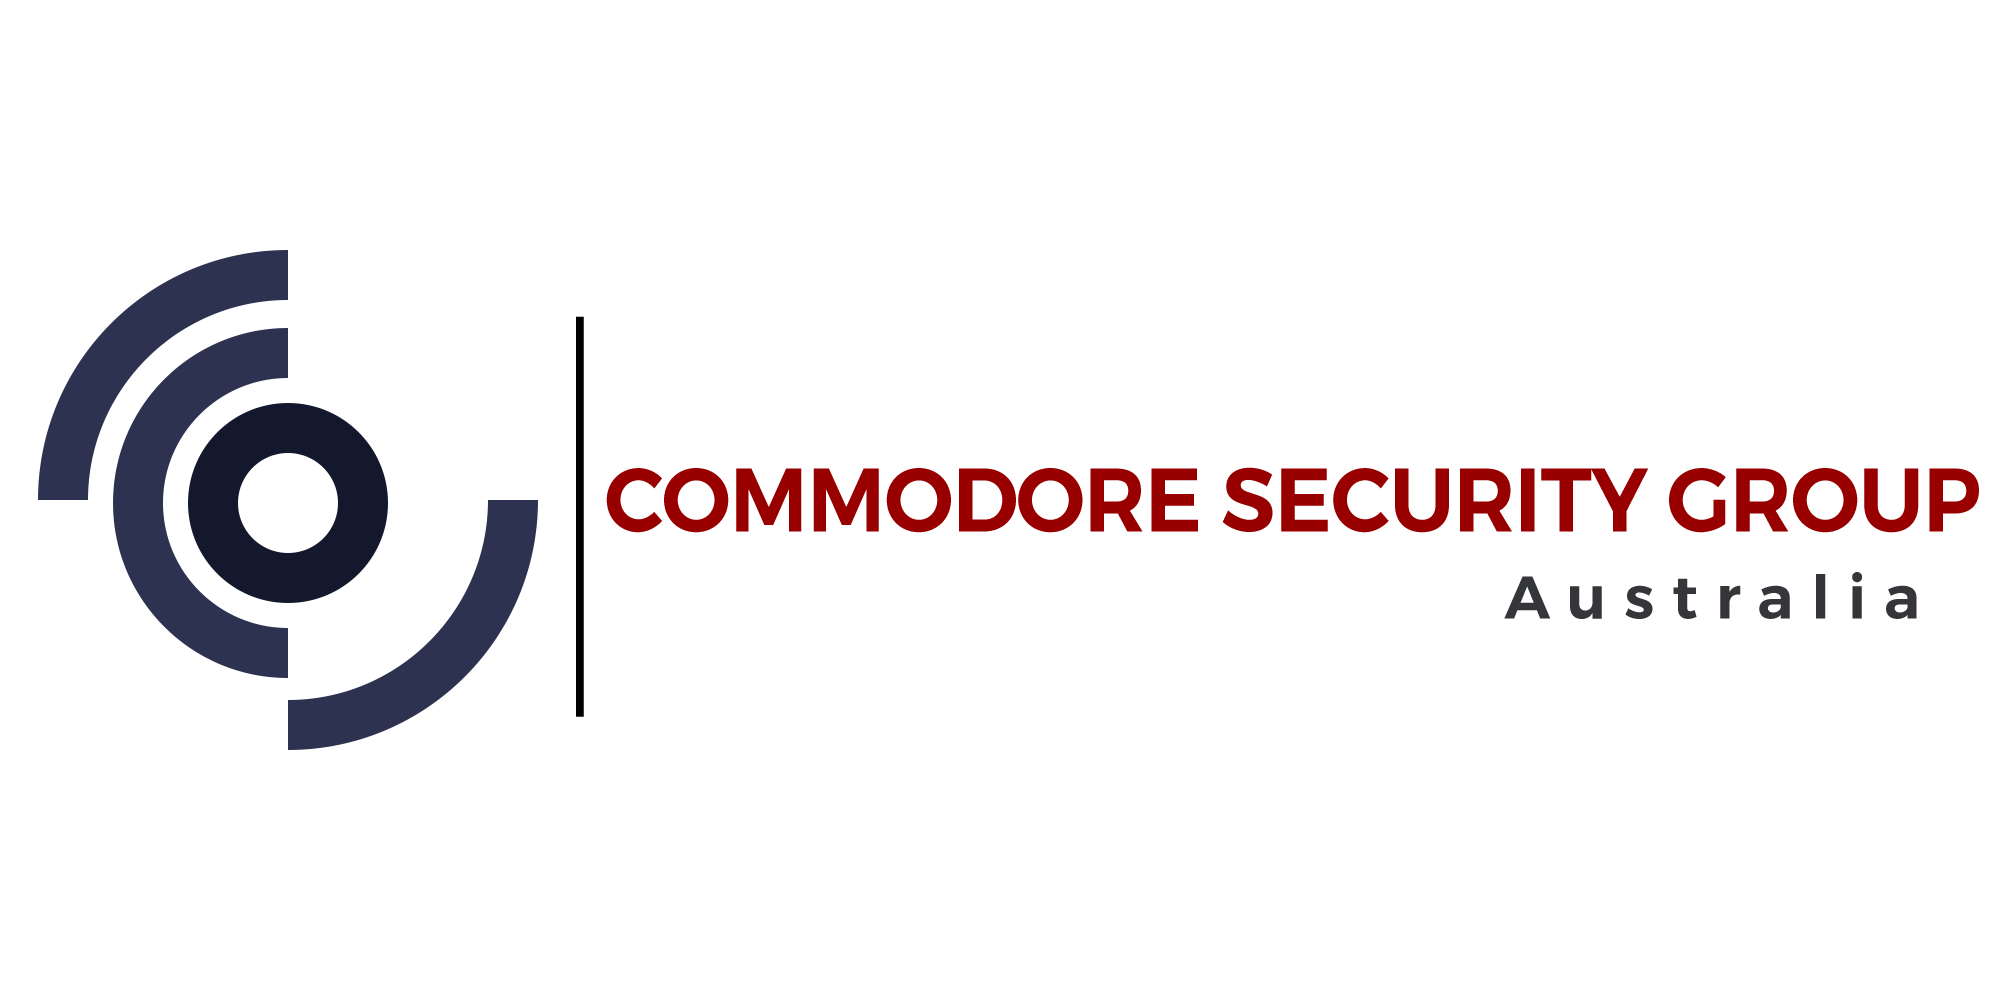 Commodore Security Group logo with no background